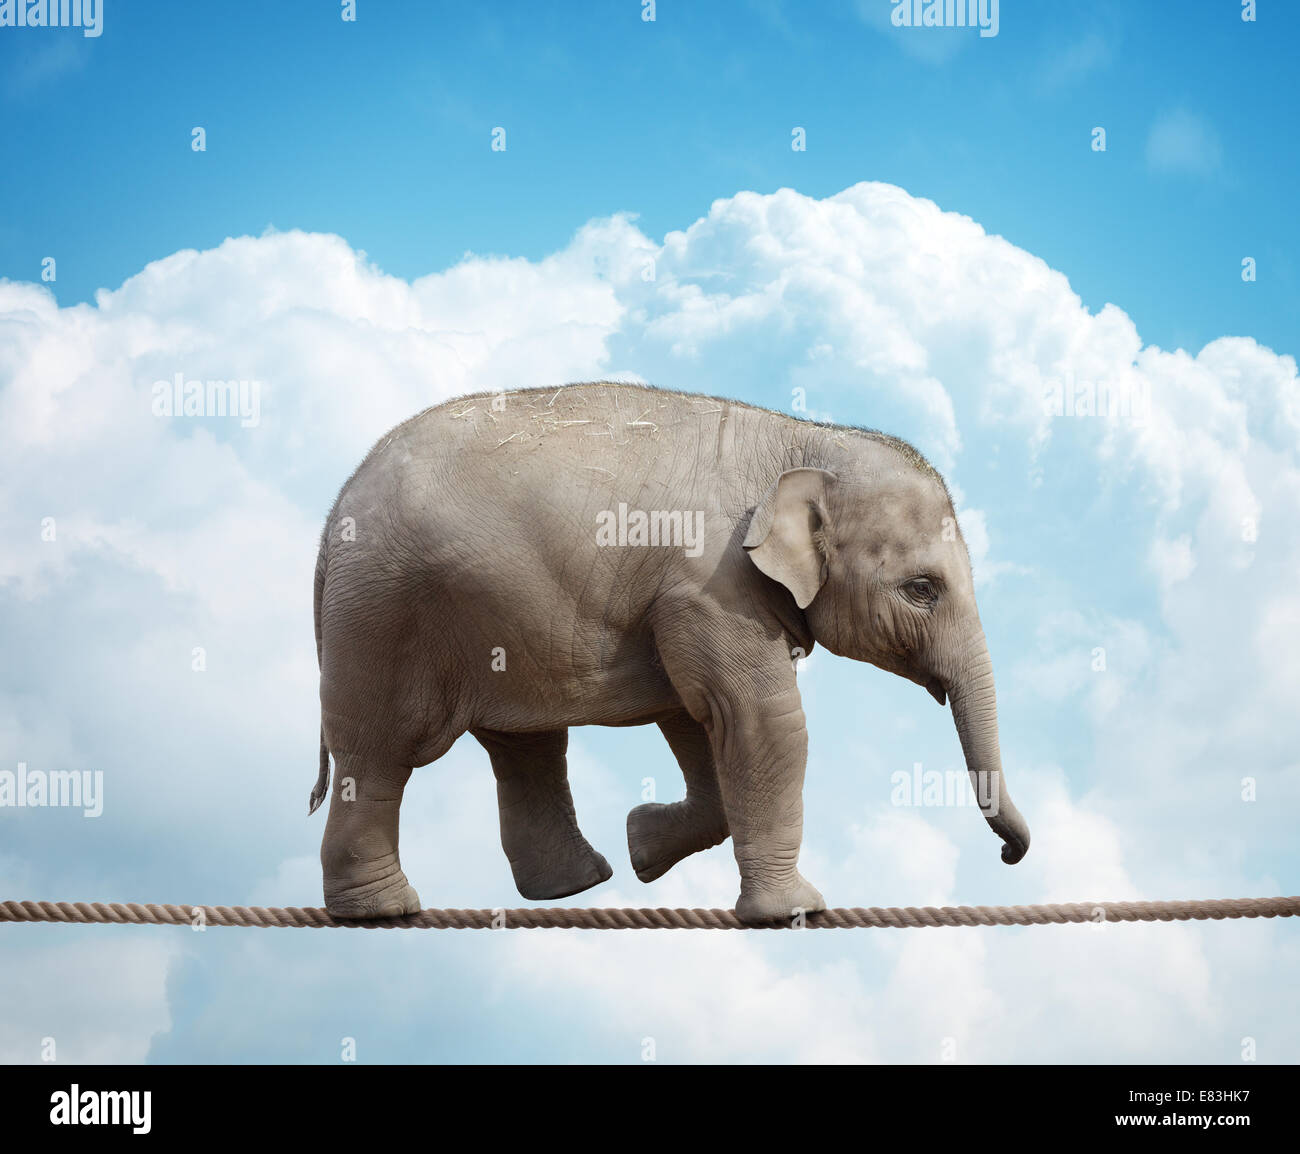 Elephant calf on tightrope Photo Stock